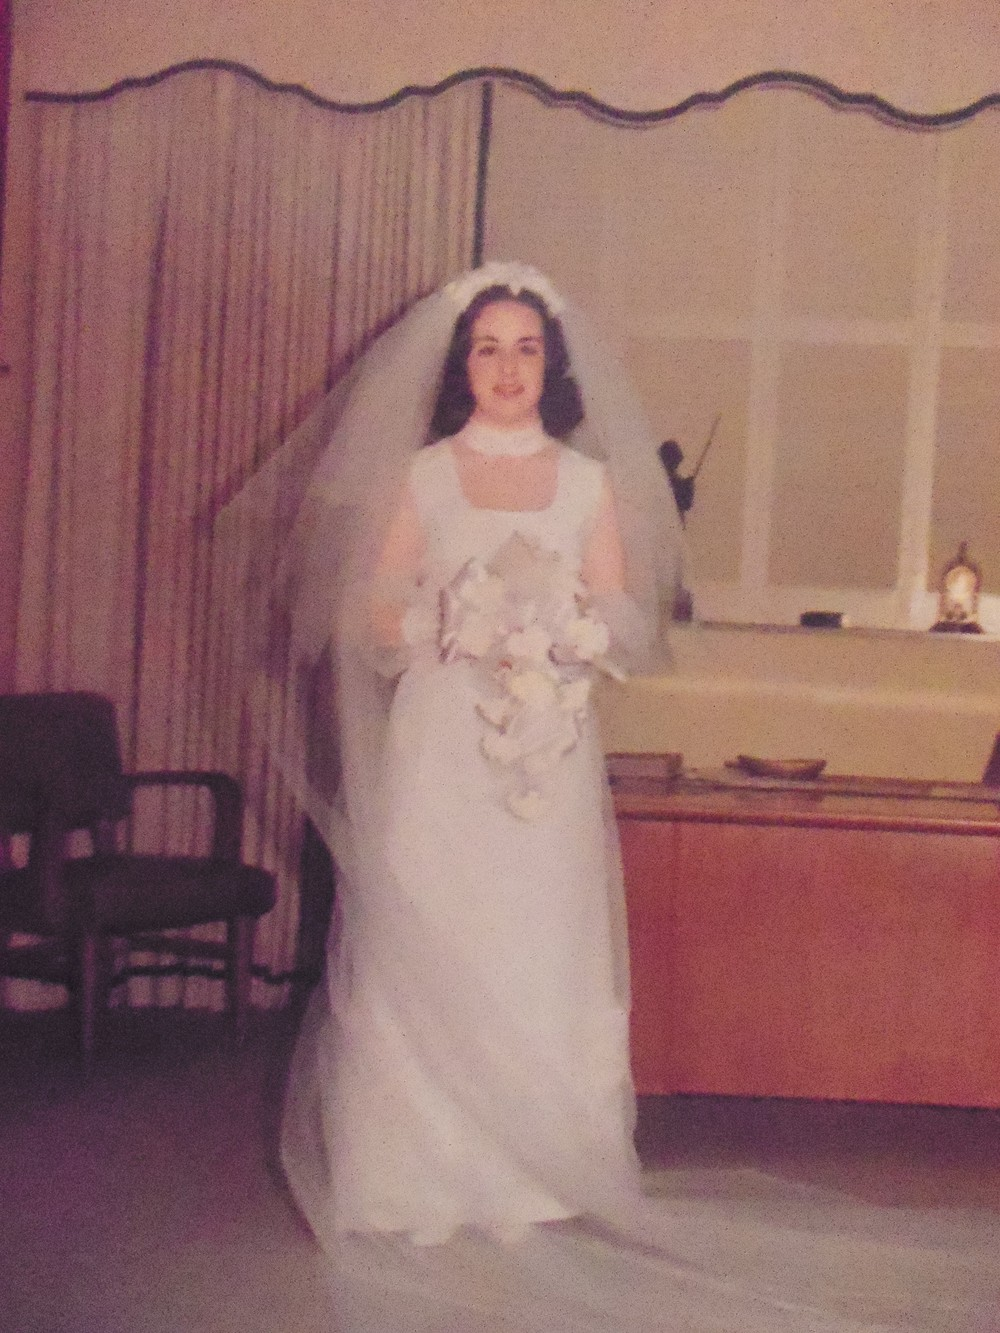 THANK YOU MAMAW FOR MY WEDDING DRESS